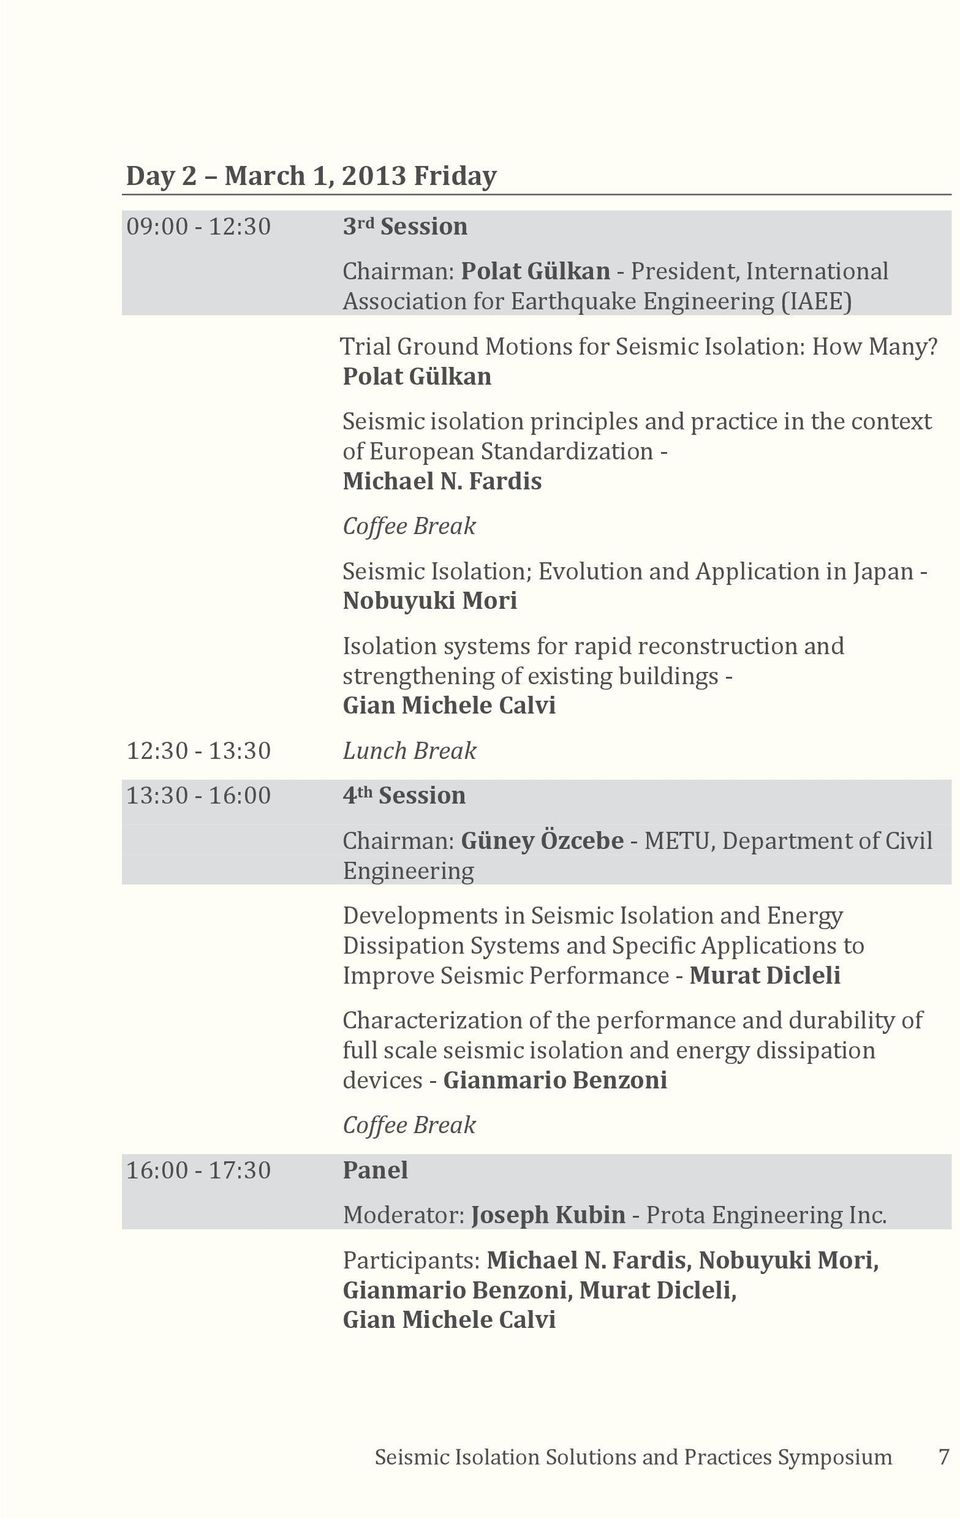 Fardis Coffee Break 12:30 13:30 Lunch Break 13:30 16:00 4 th Session 16:00 17:30 Panel Seismic Isolation; Evolution and Application in Japan Nobuyuki Mori Isolation systems for rapid reconstruction